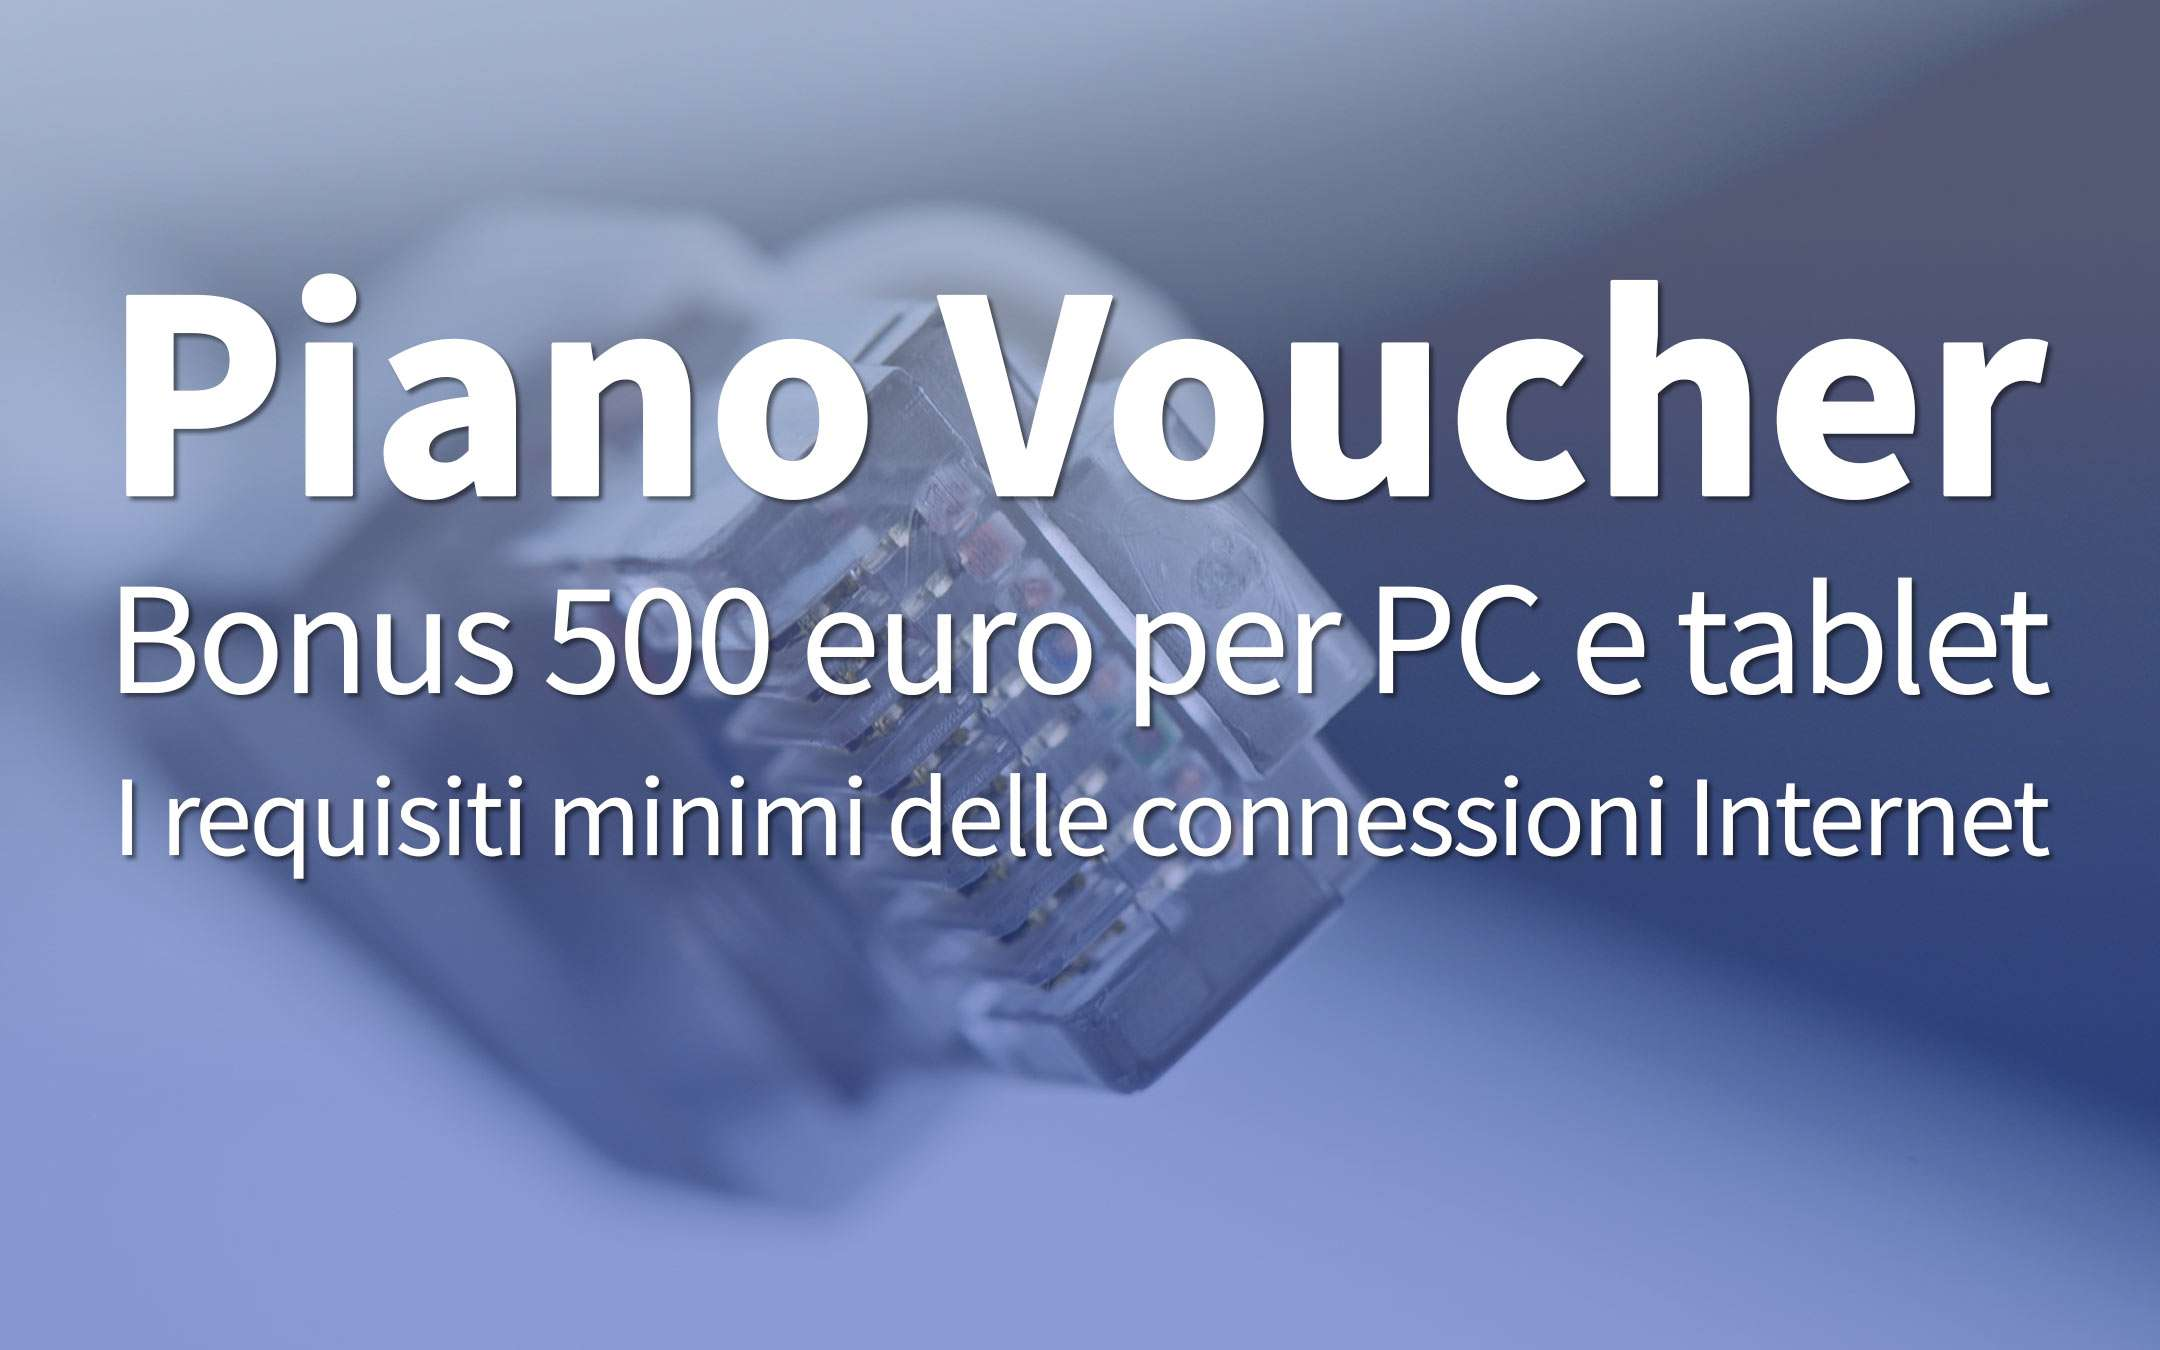 Bonus 500 euros: the requirements of the connections